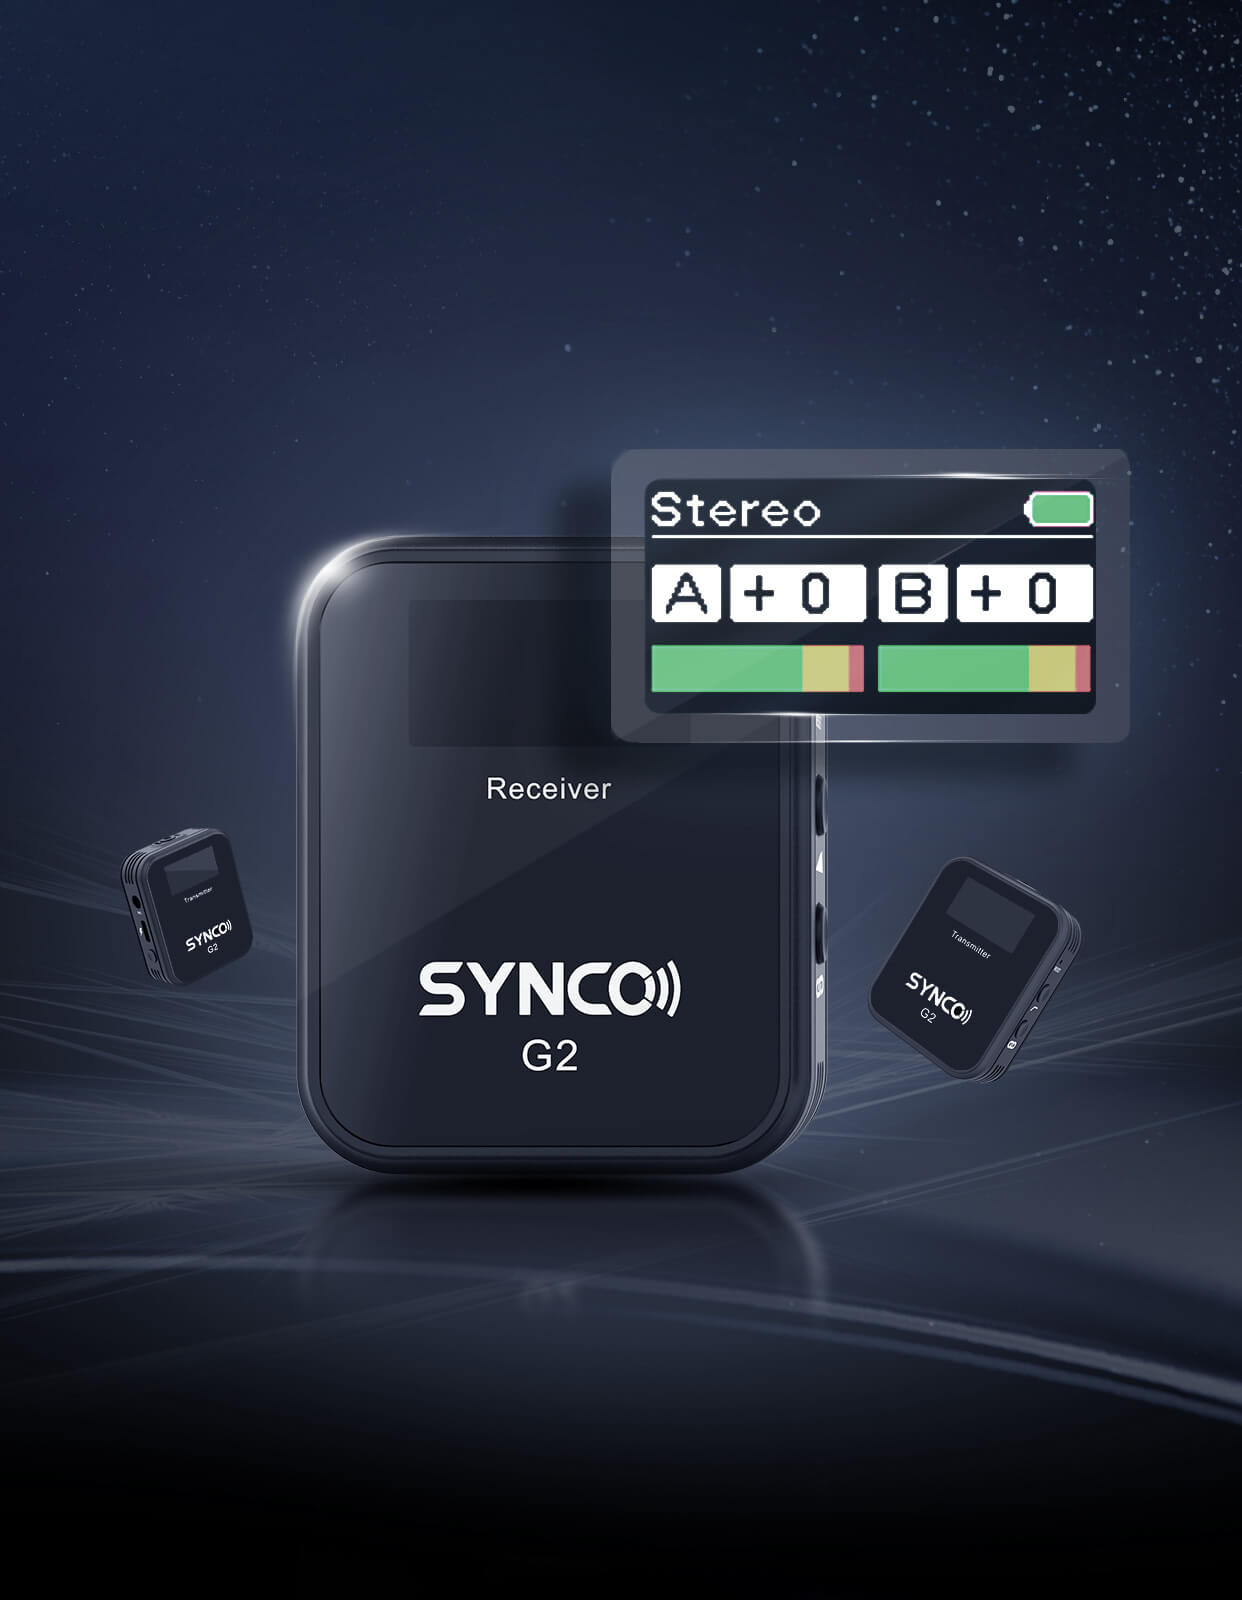 SYNCO G2(A2) New TFT Display & One More Transmitter Make Well-deserved Plus